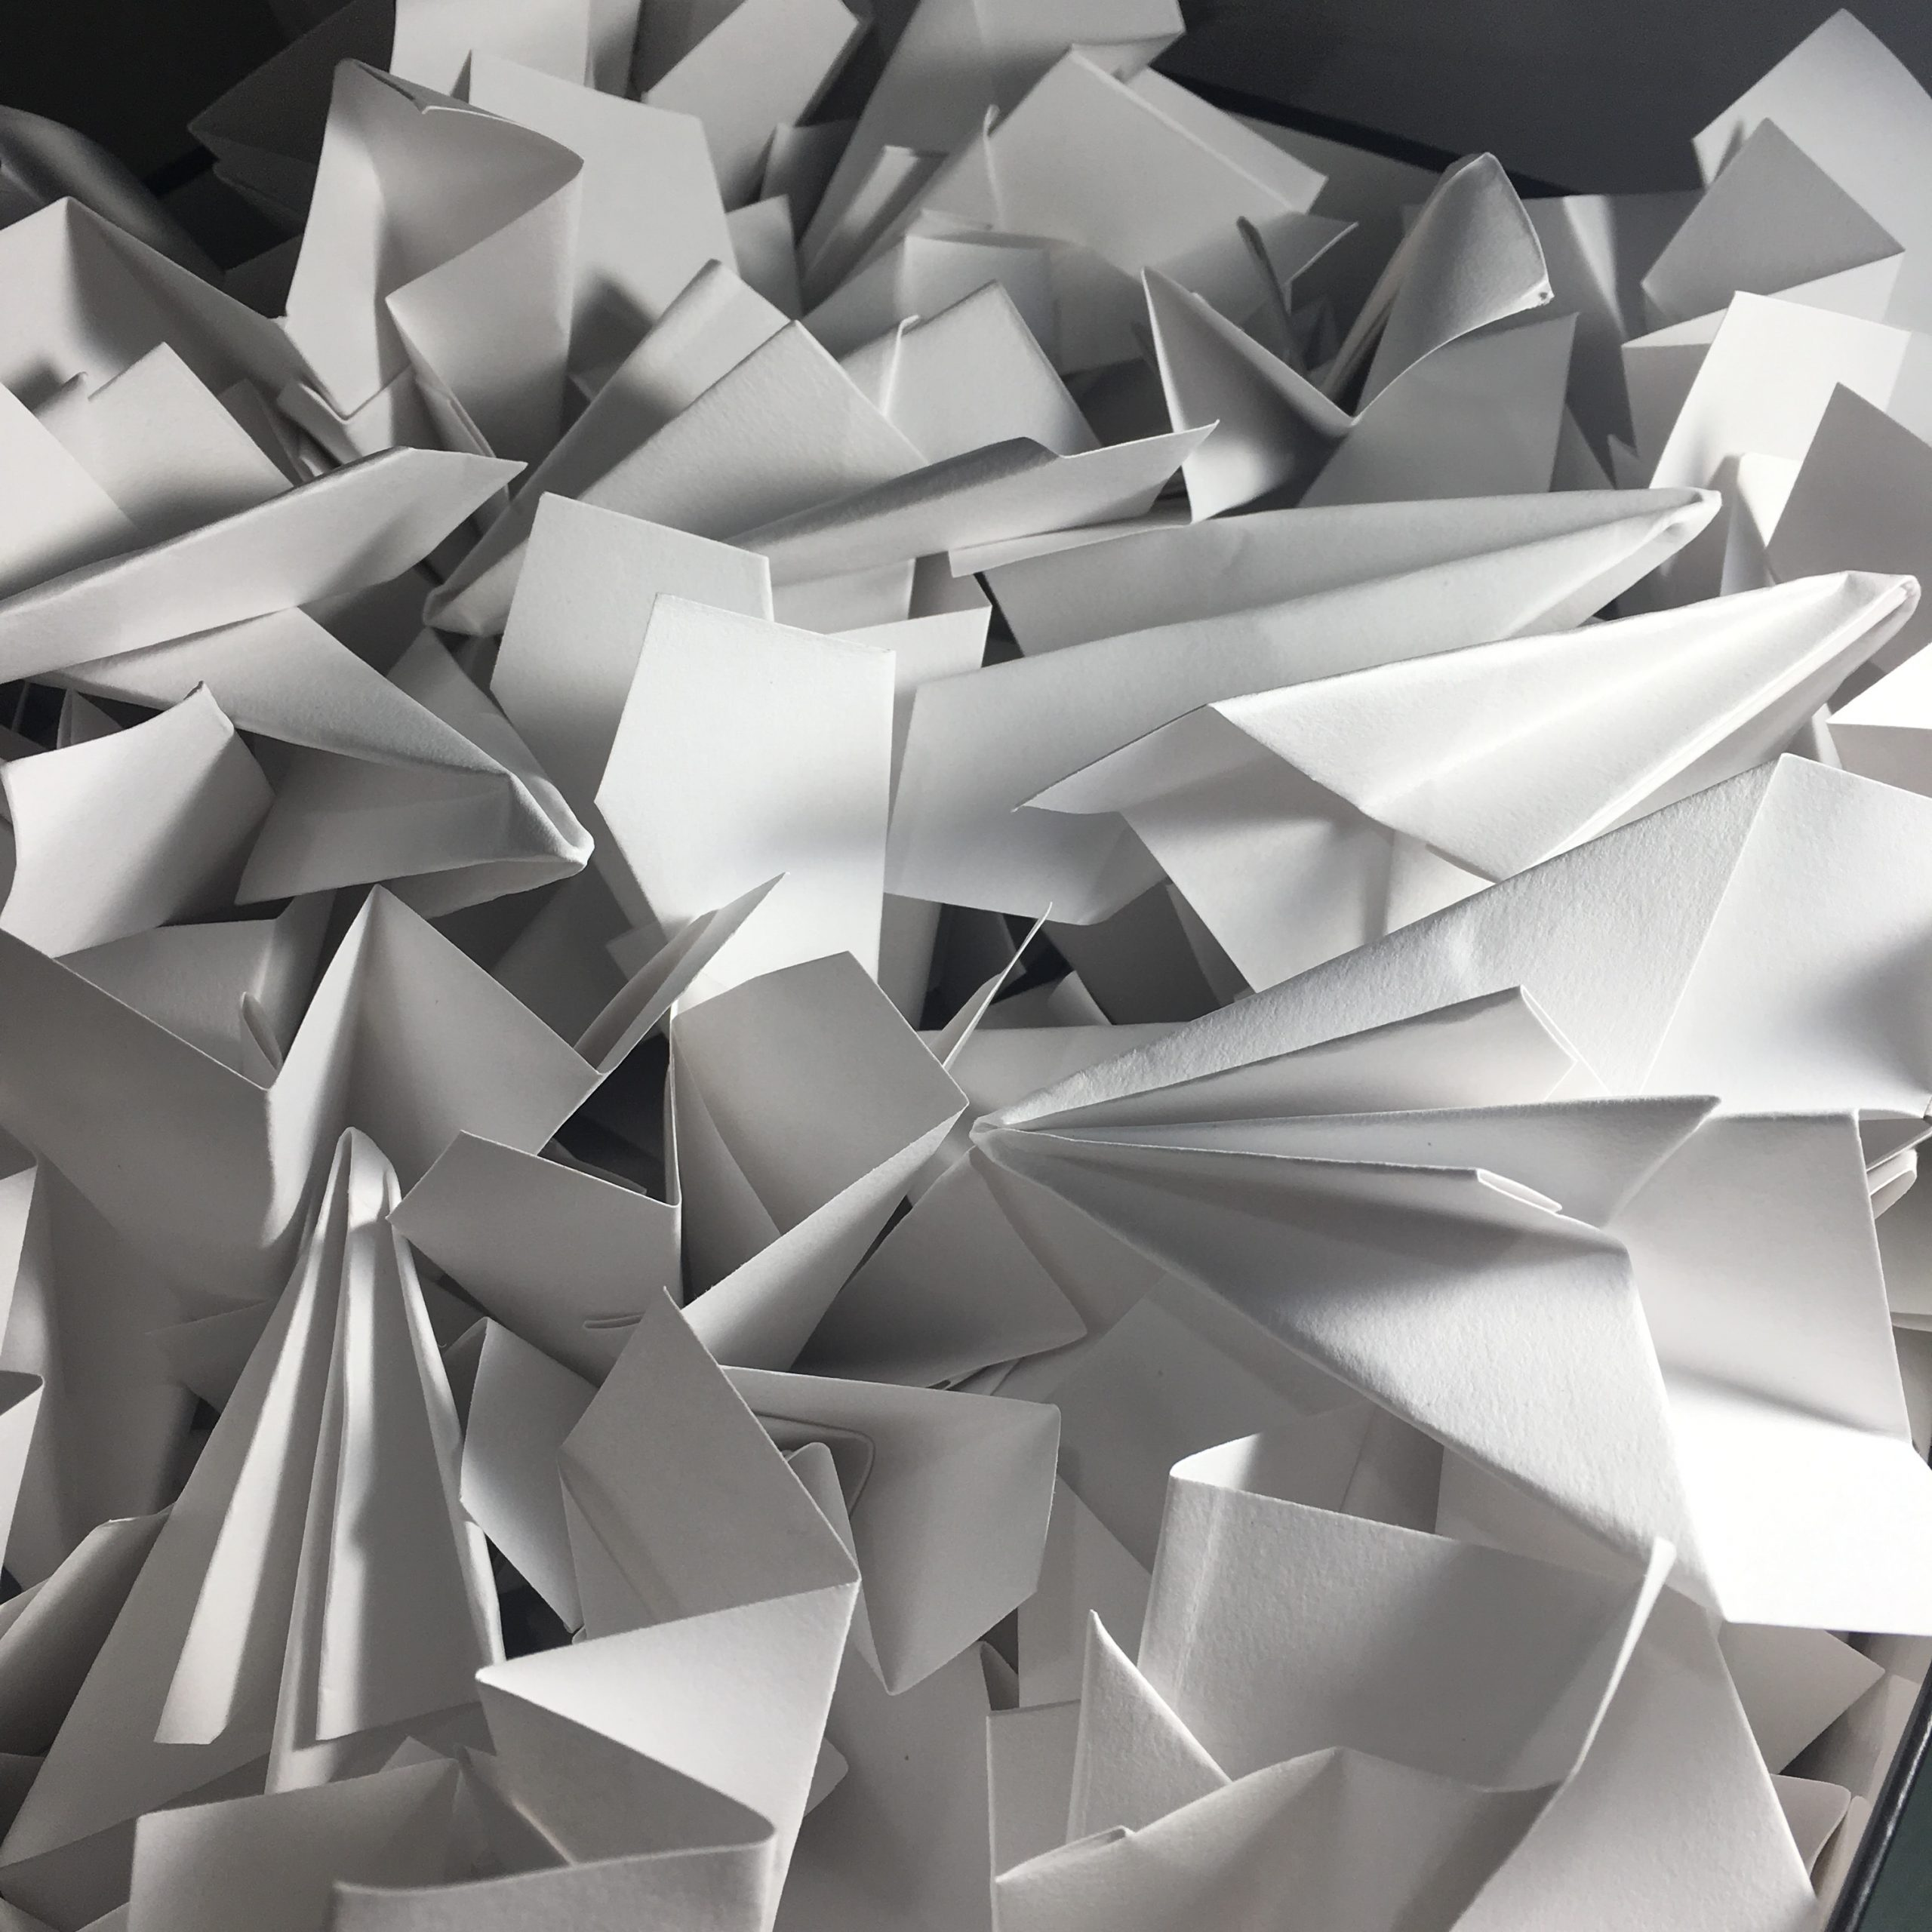 pile of paper airplanes